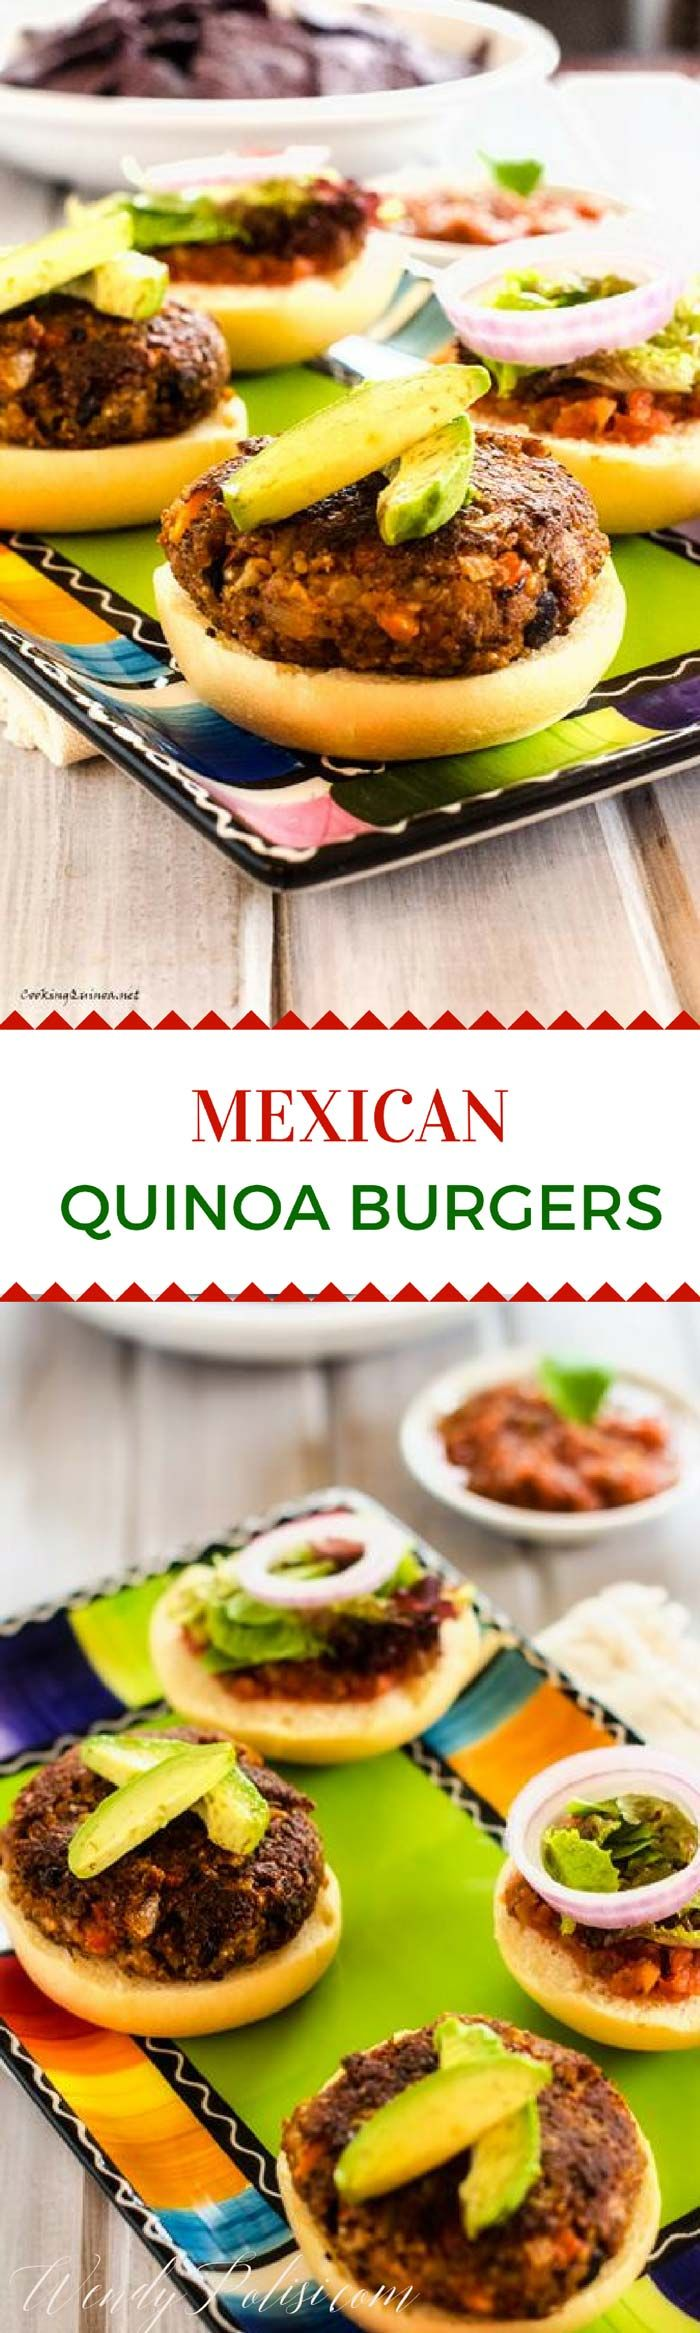 These Mexican Quinoa Burgers are the perfect solution to Meatless Monday. Gluten Free with a Vegan Option. via @wendypolisi